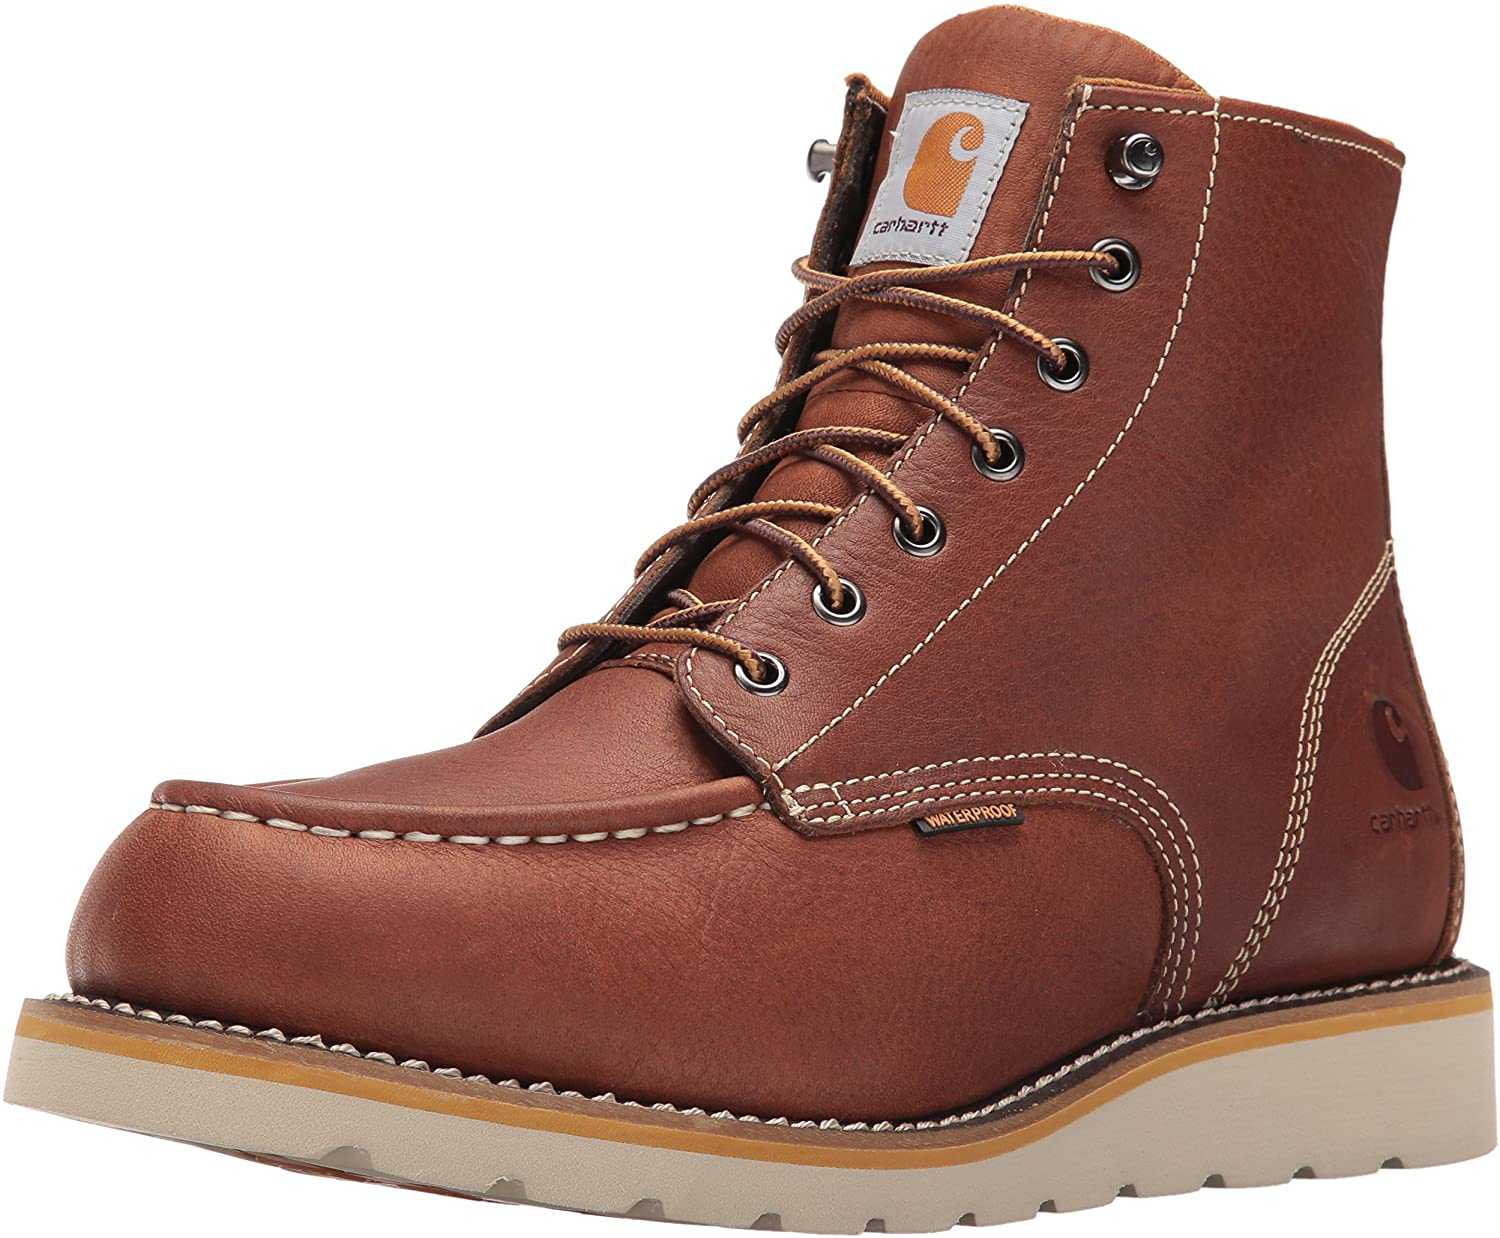 Carhartt Men's 6 Inch Waterproof Wedge Soft Toe Work Boot